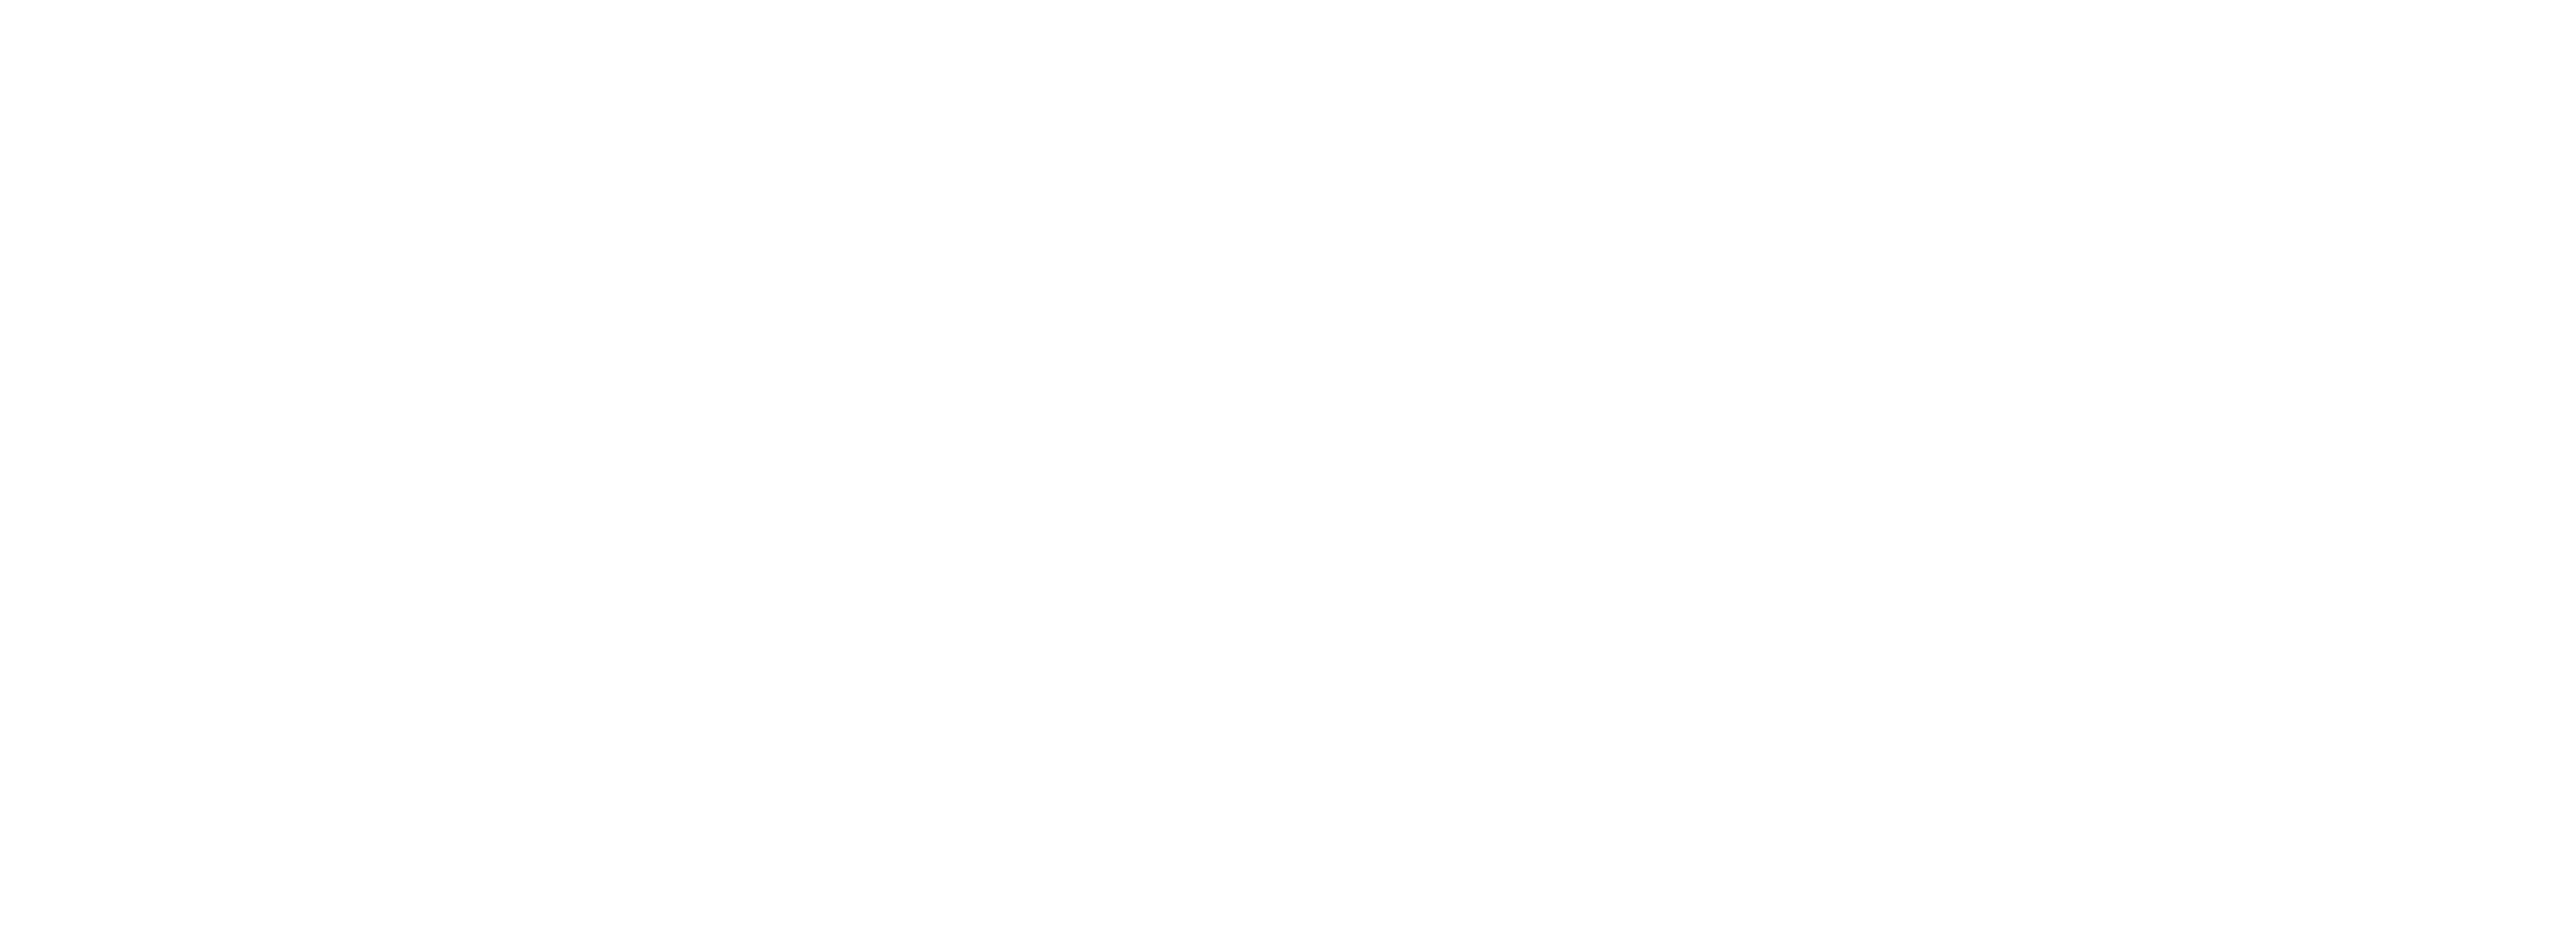 Strategic Partnership Institute